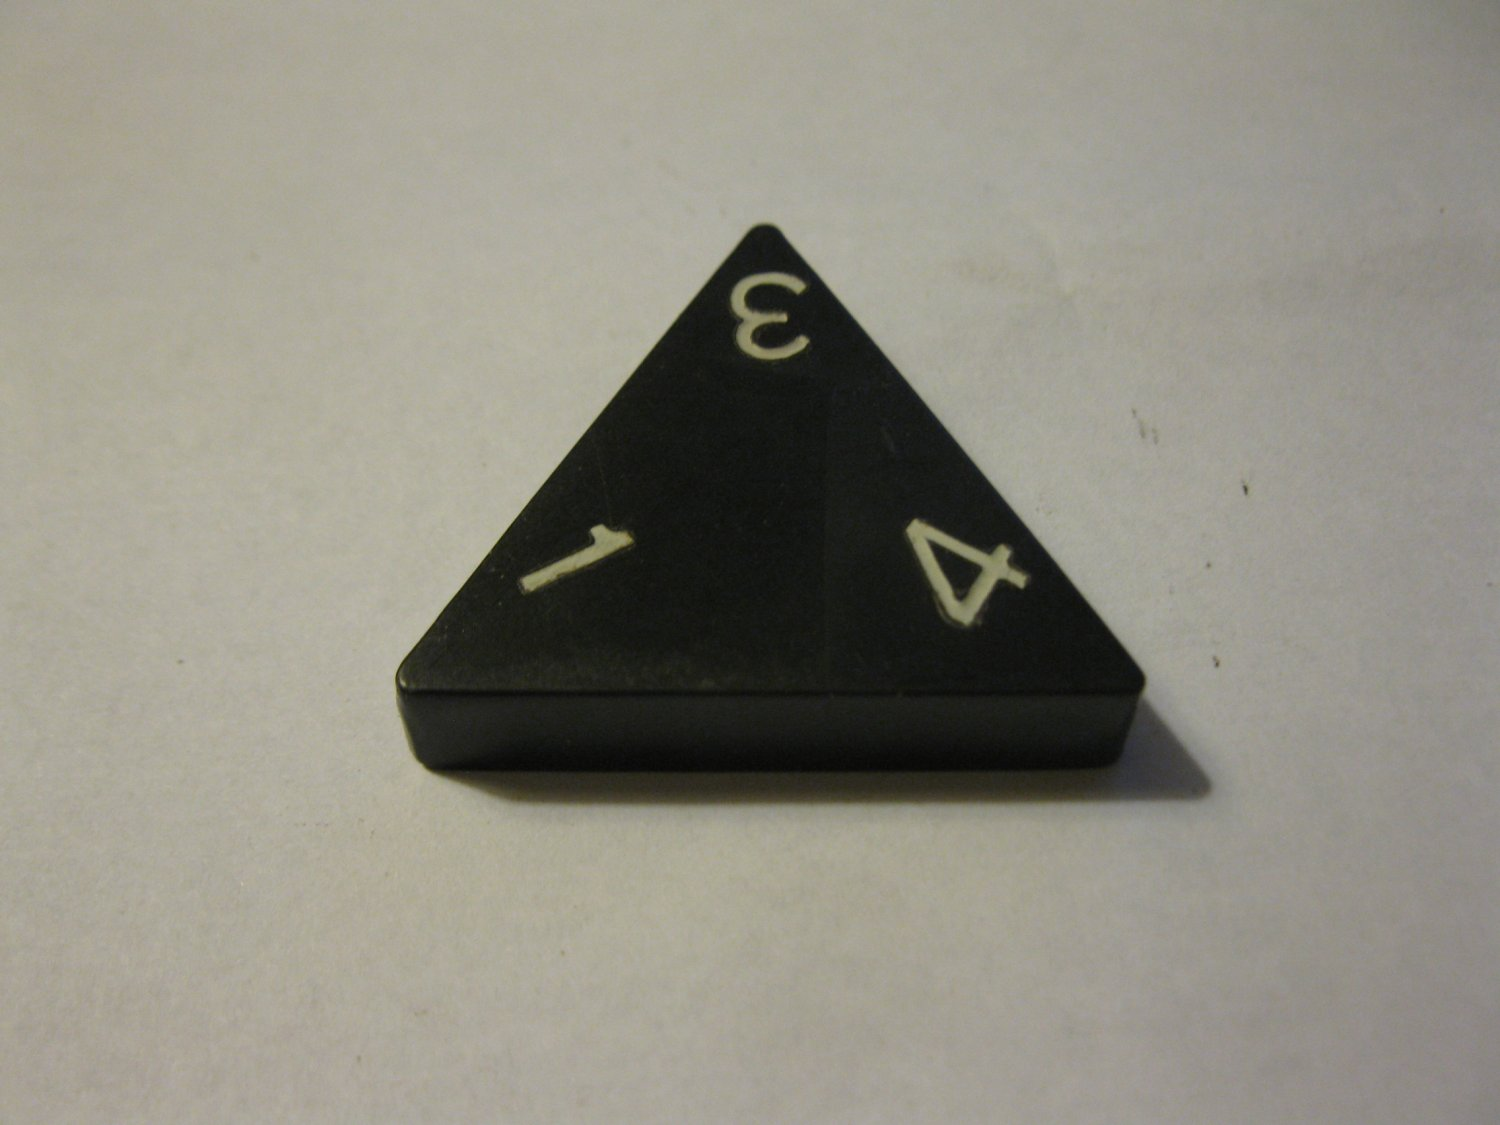 1985 Tri-ominoes Board Game Piece: Triangle # 1-3-4